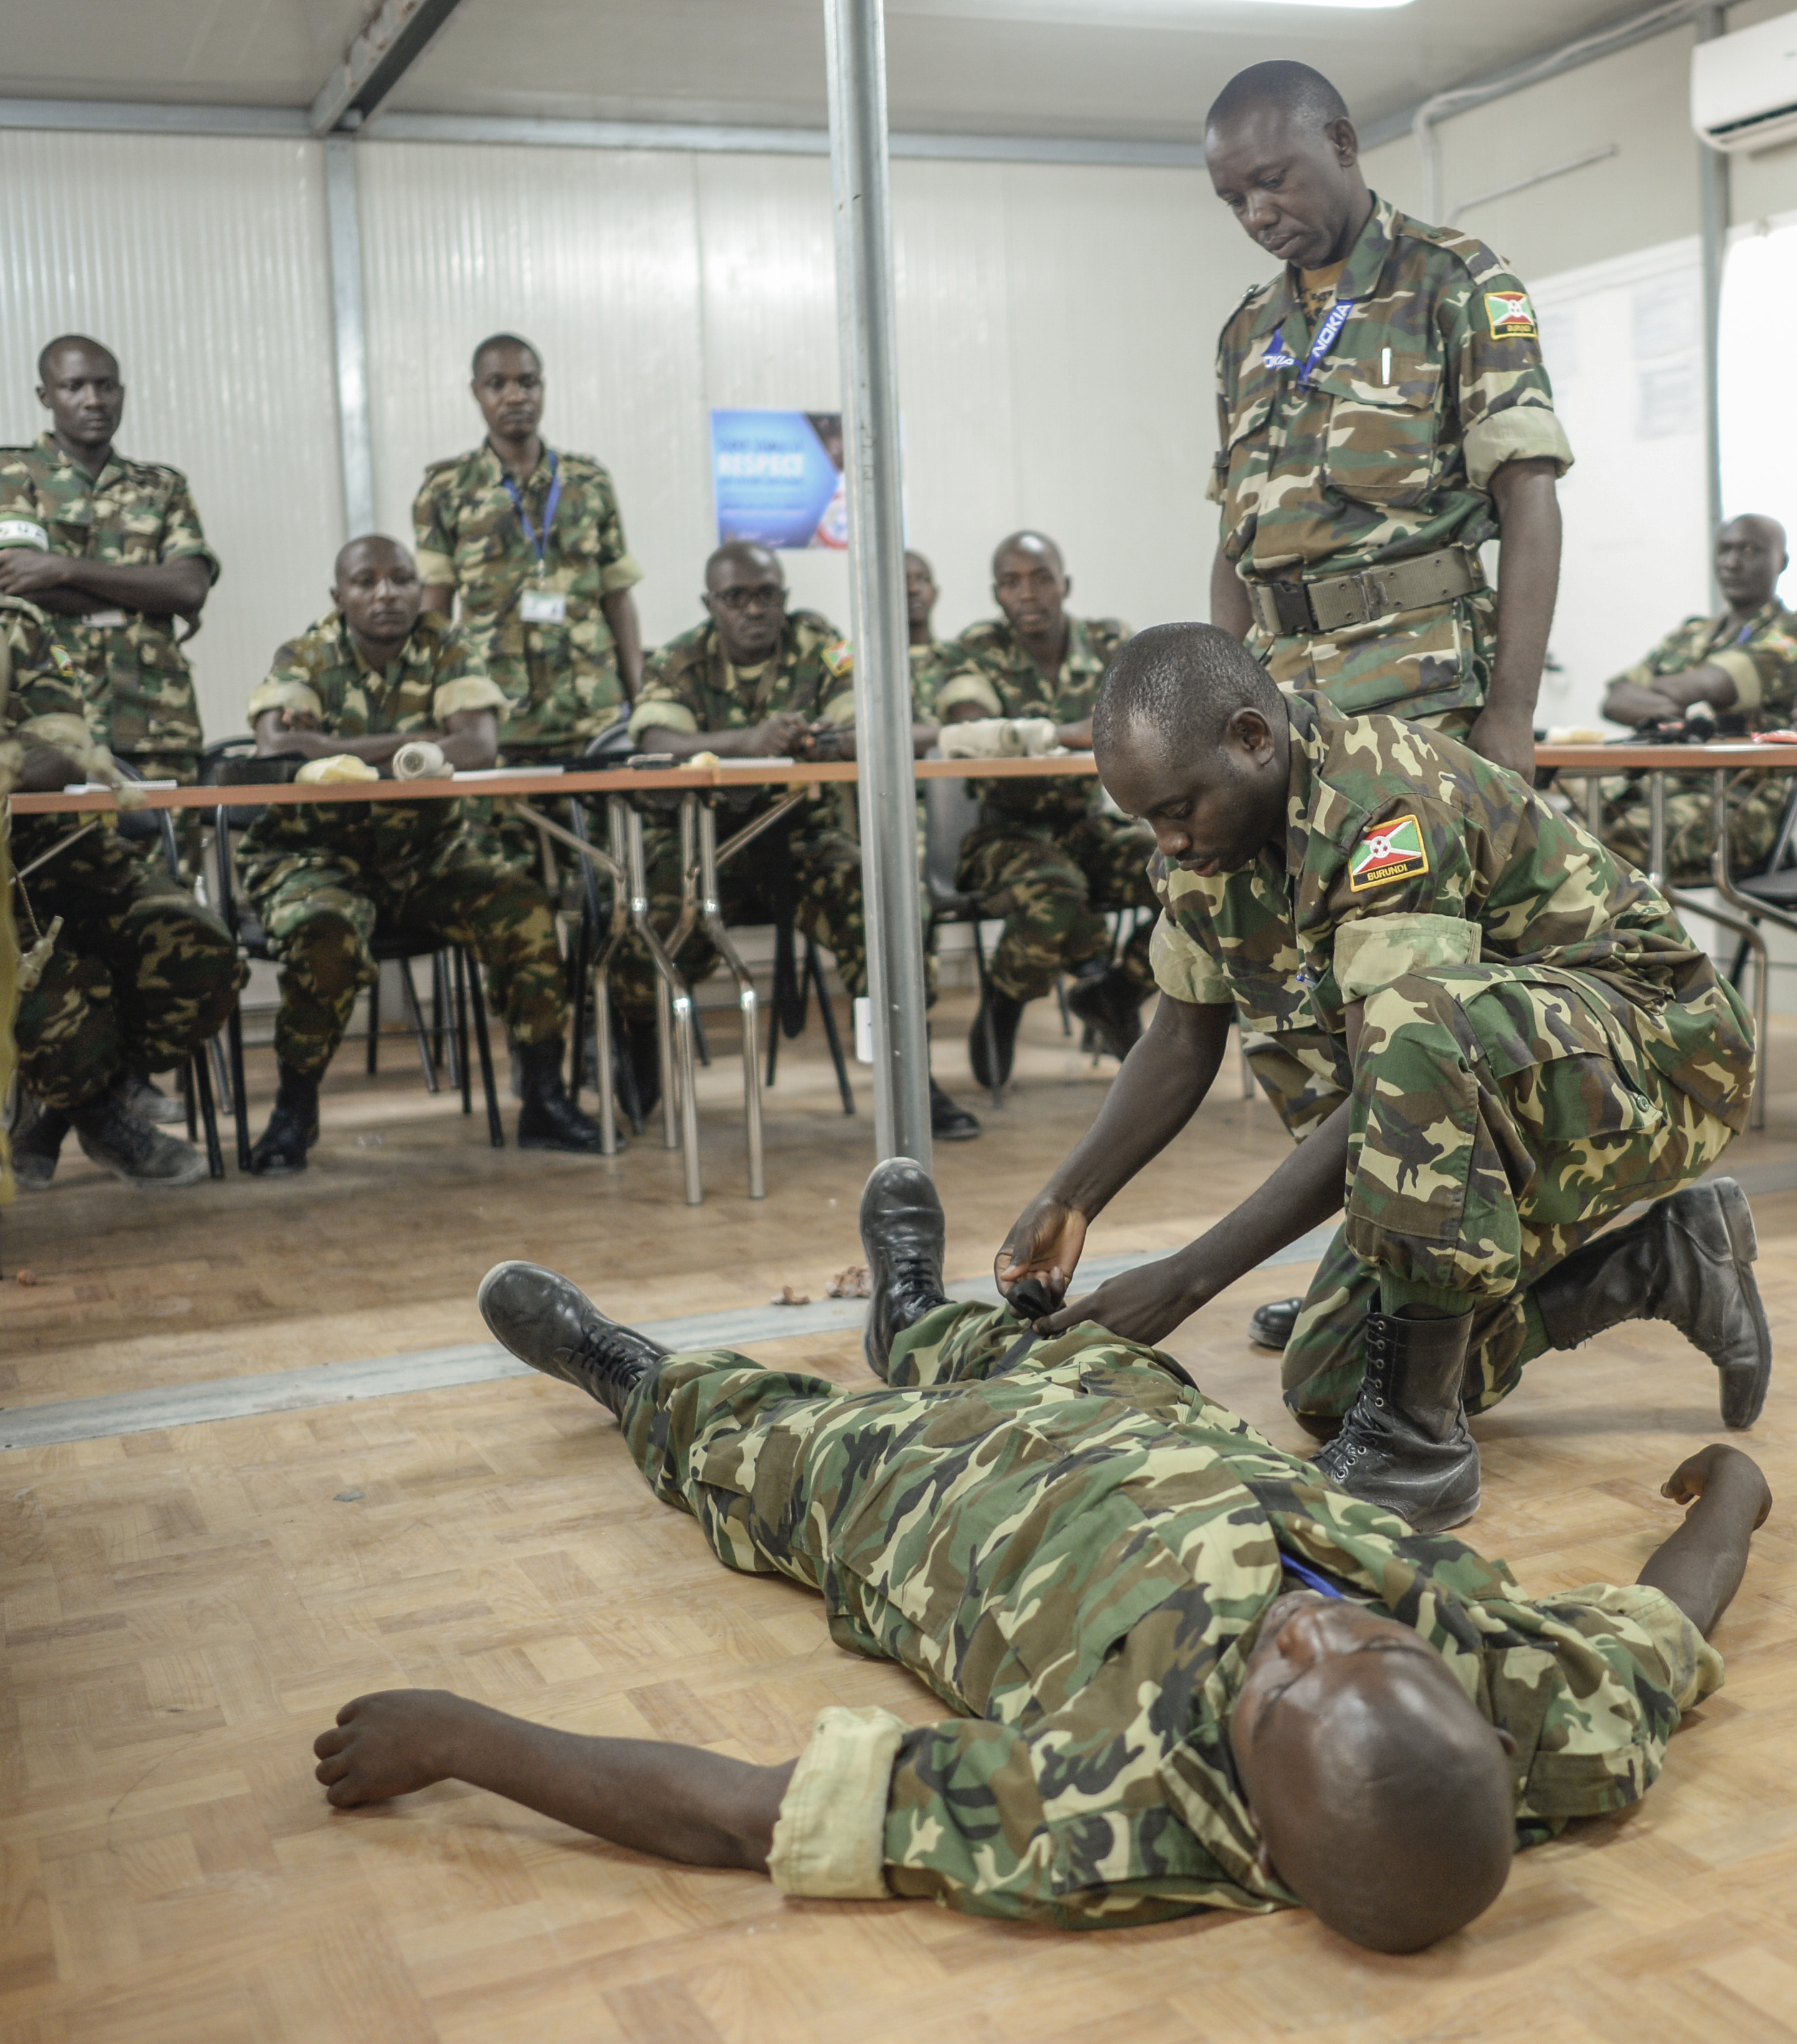 MOGADISHU, SOMALIA- Burundi military personnel demonstrate skills learned during a first response medical course facilitated by the United Nations in Somalia, Dec. 19, 2016. The U. N. course curriculum is intended to standardize medical support techniques during peacekeeping operations and political missions in the field.